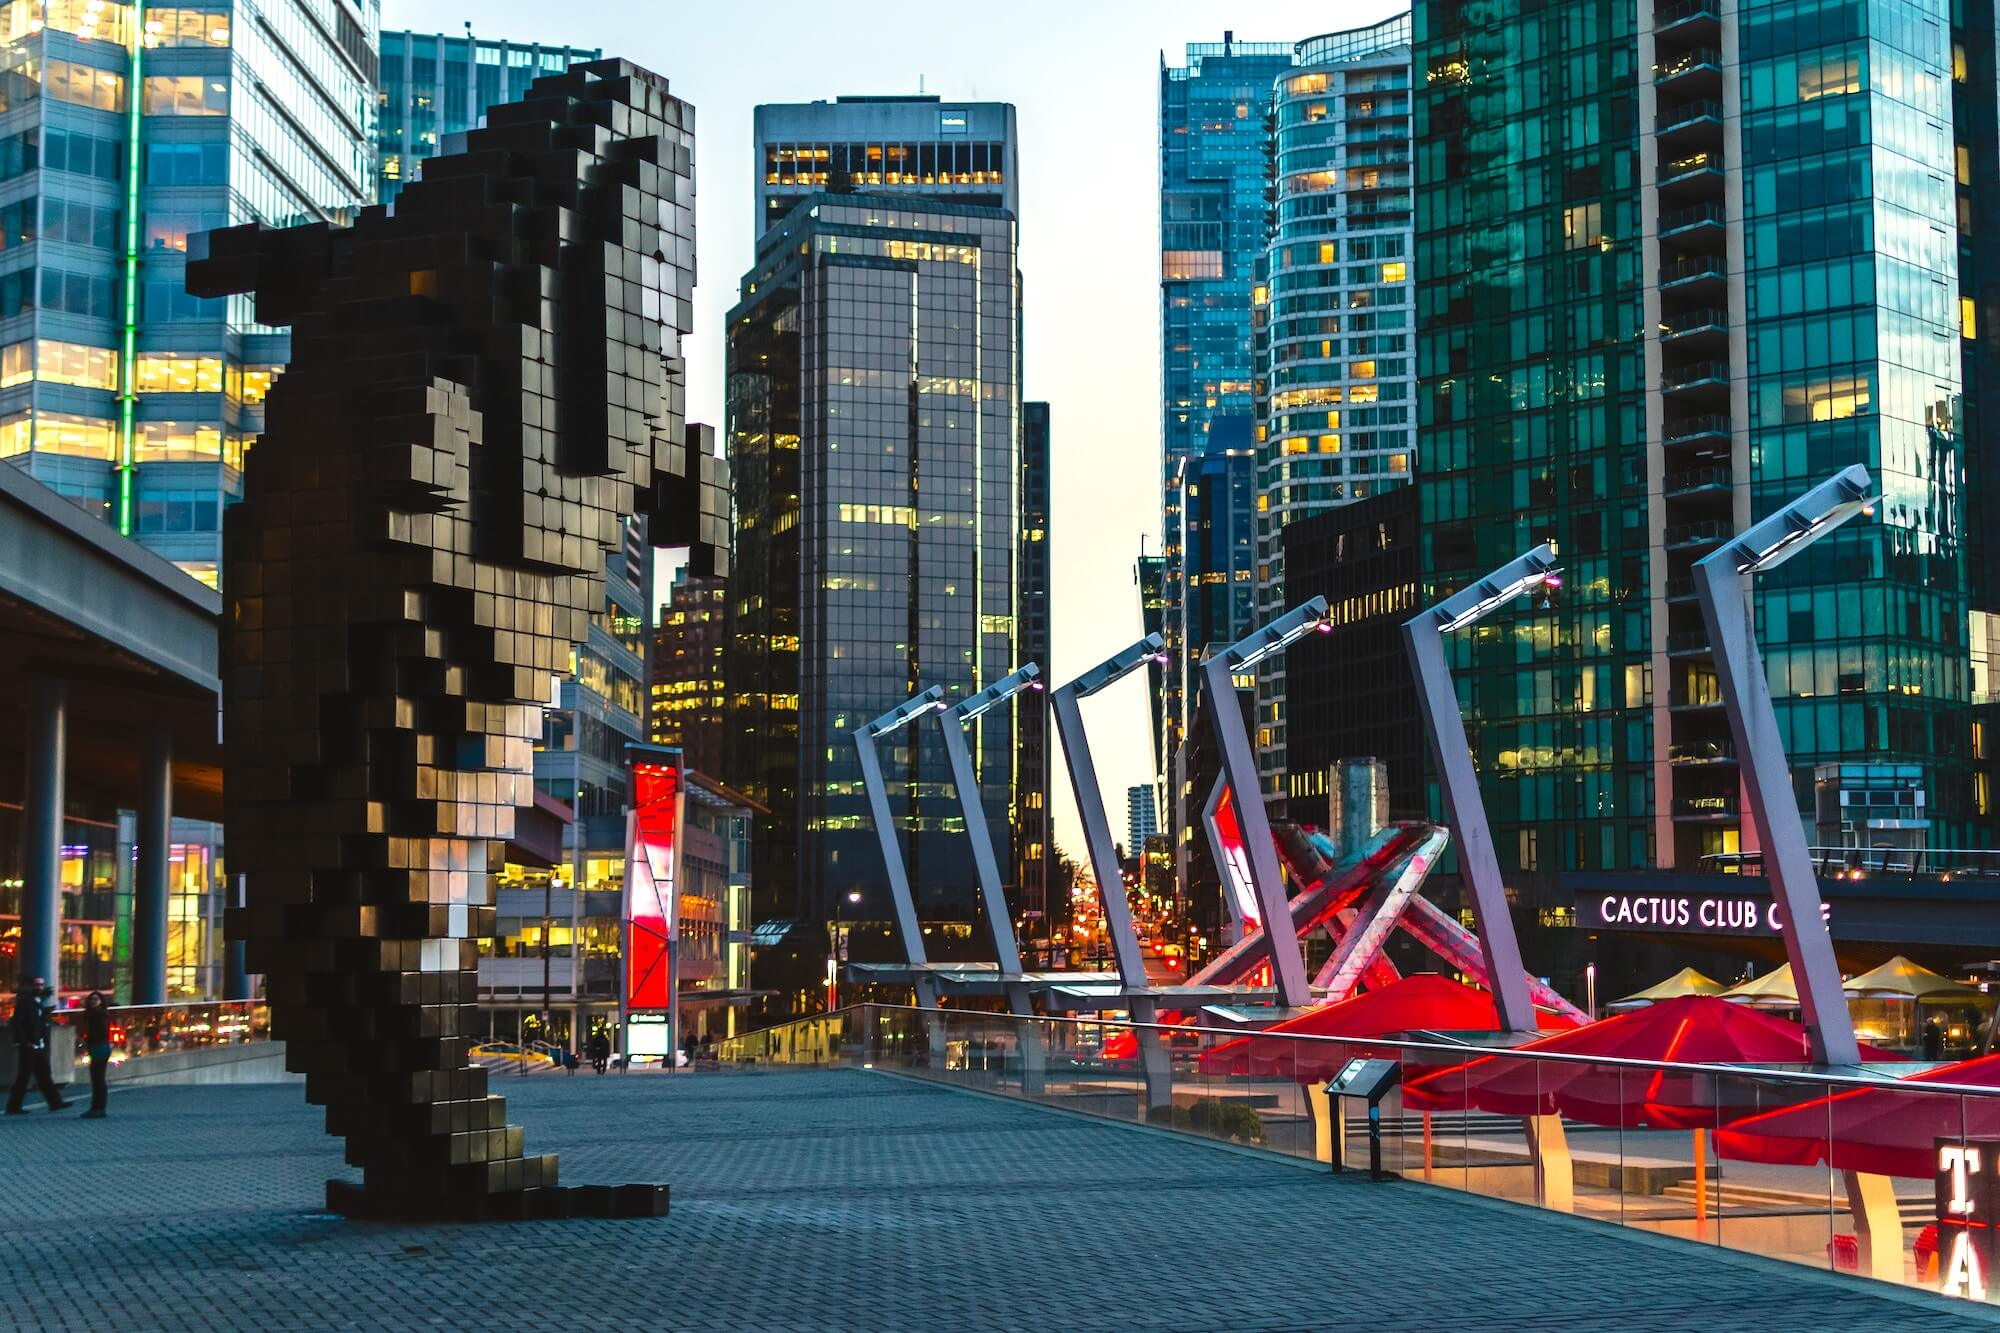 Digital Orca Canada Place Vancouver